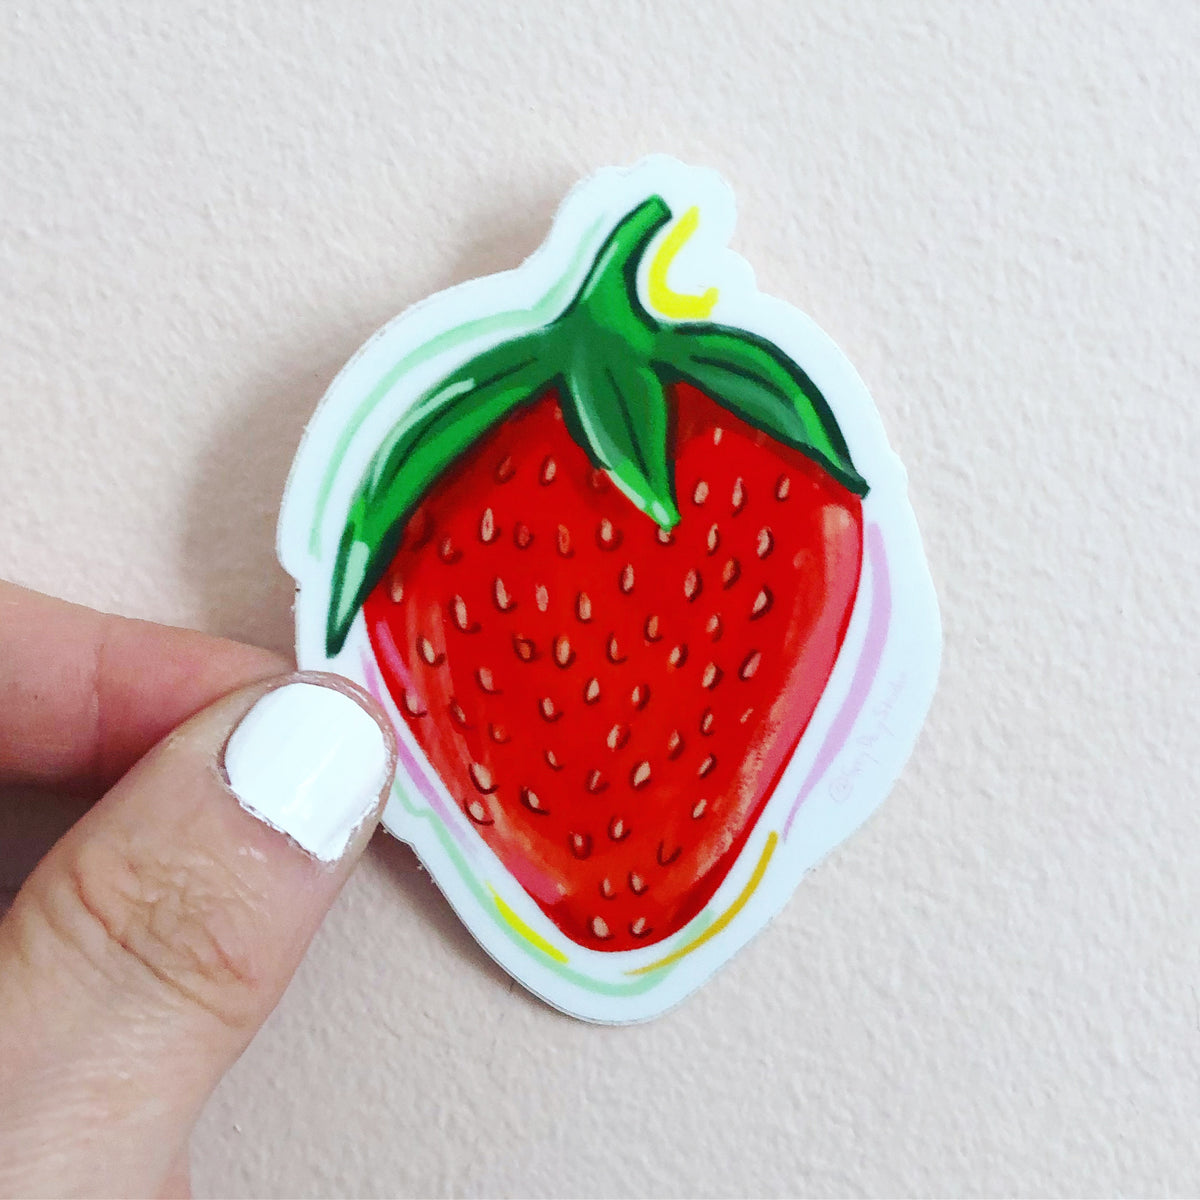 Strawberry sticker, fruit sticker, red sticker, by Abigail Gray Swartz